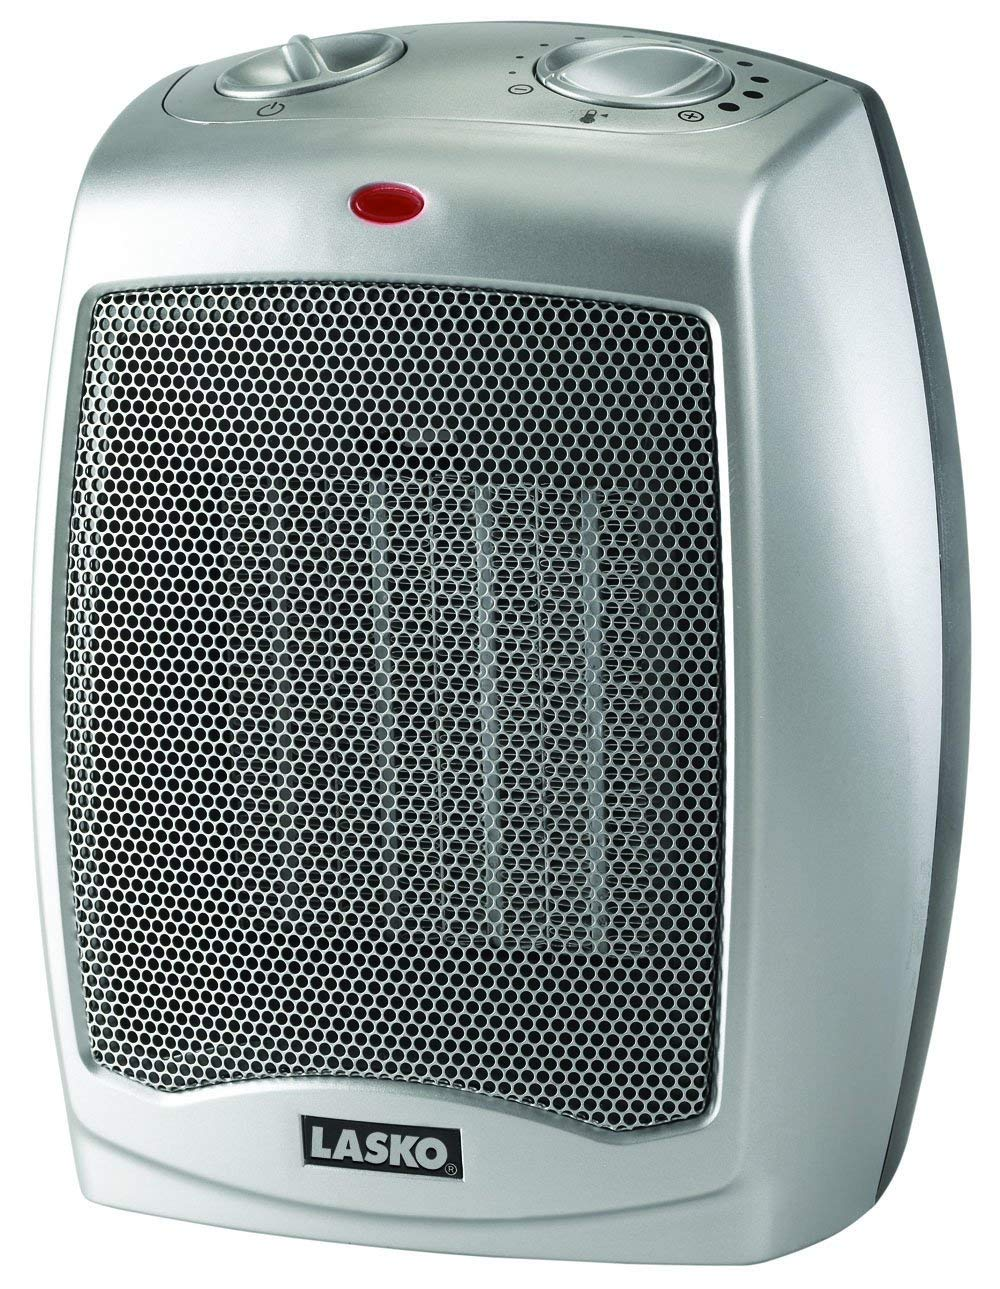 Lasko Portable Ceramic Space Heater